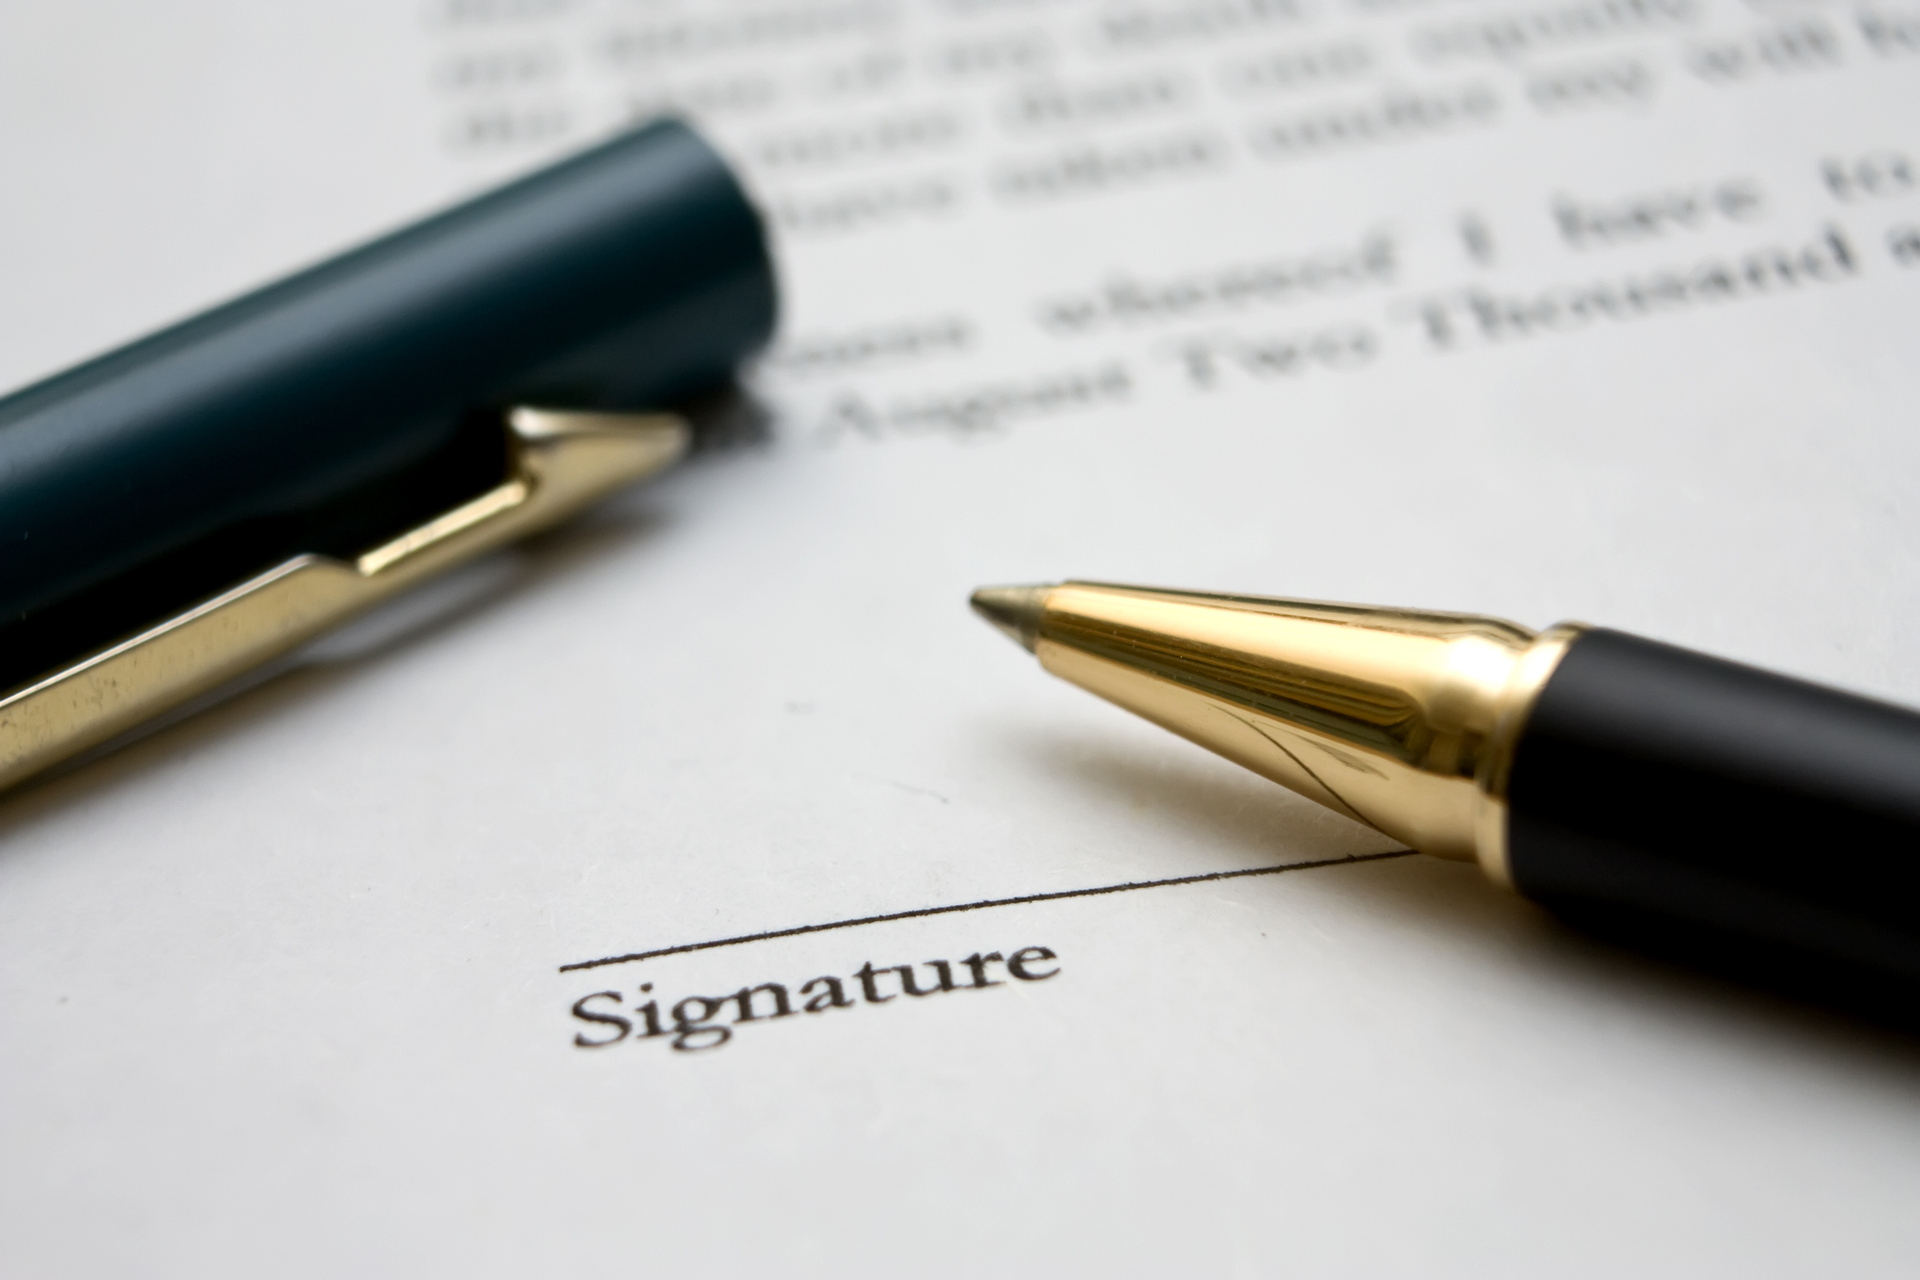 to-sign-a-contract-3-1236622-1920x1280